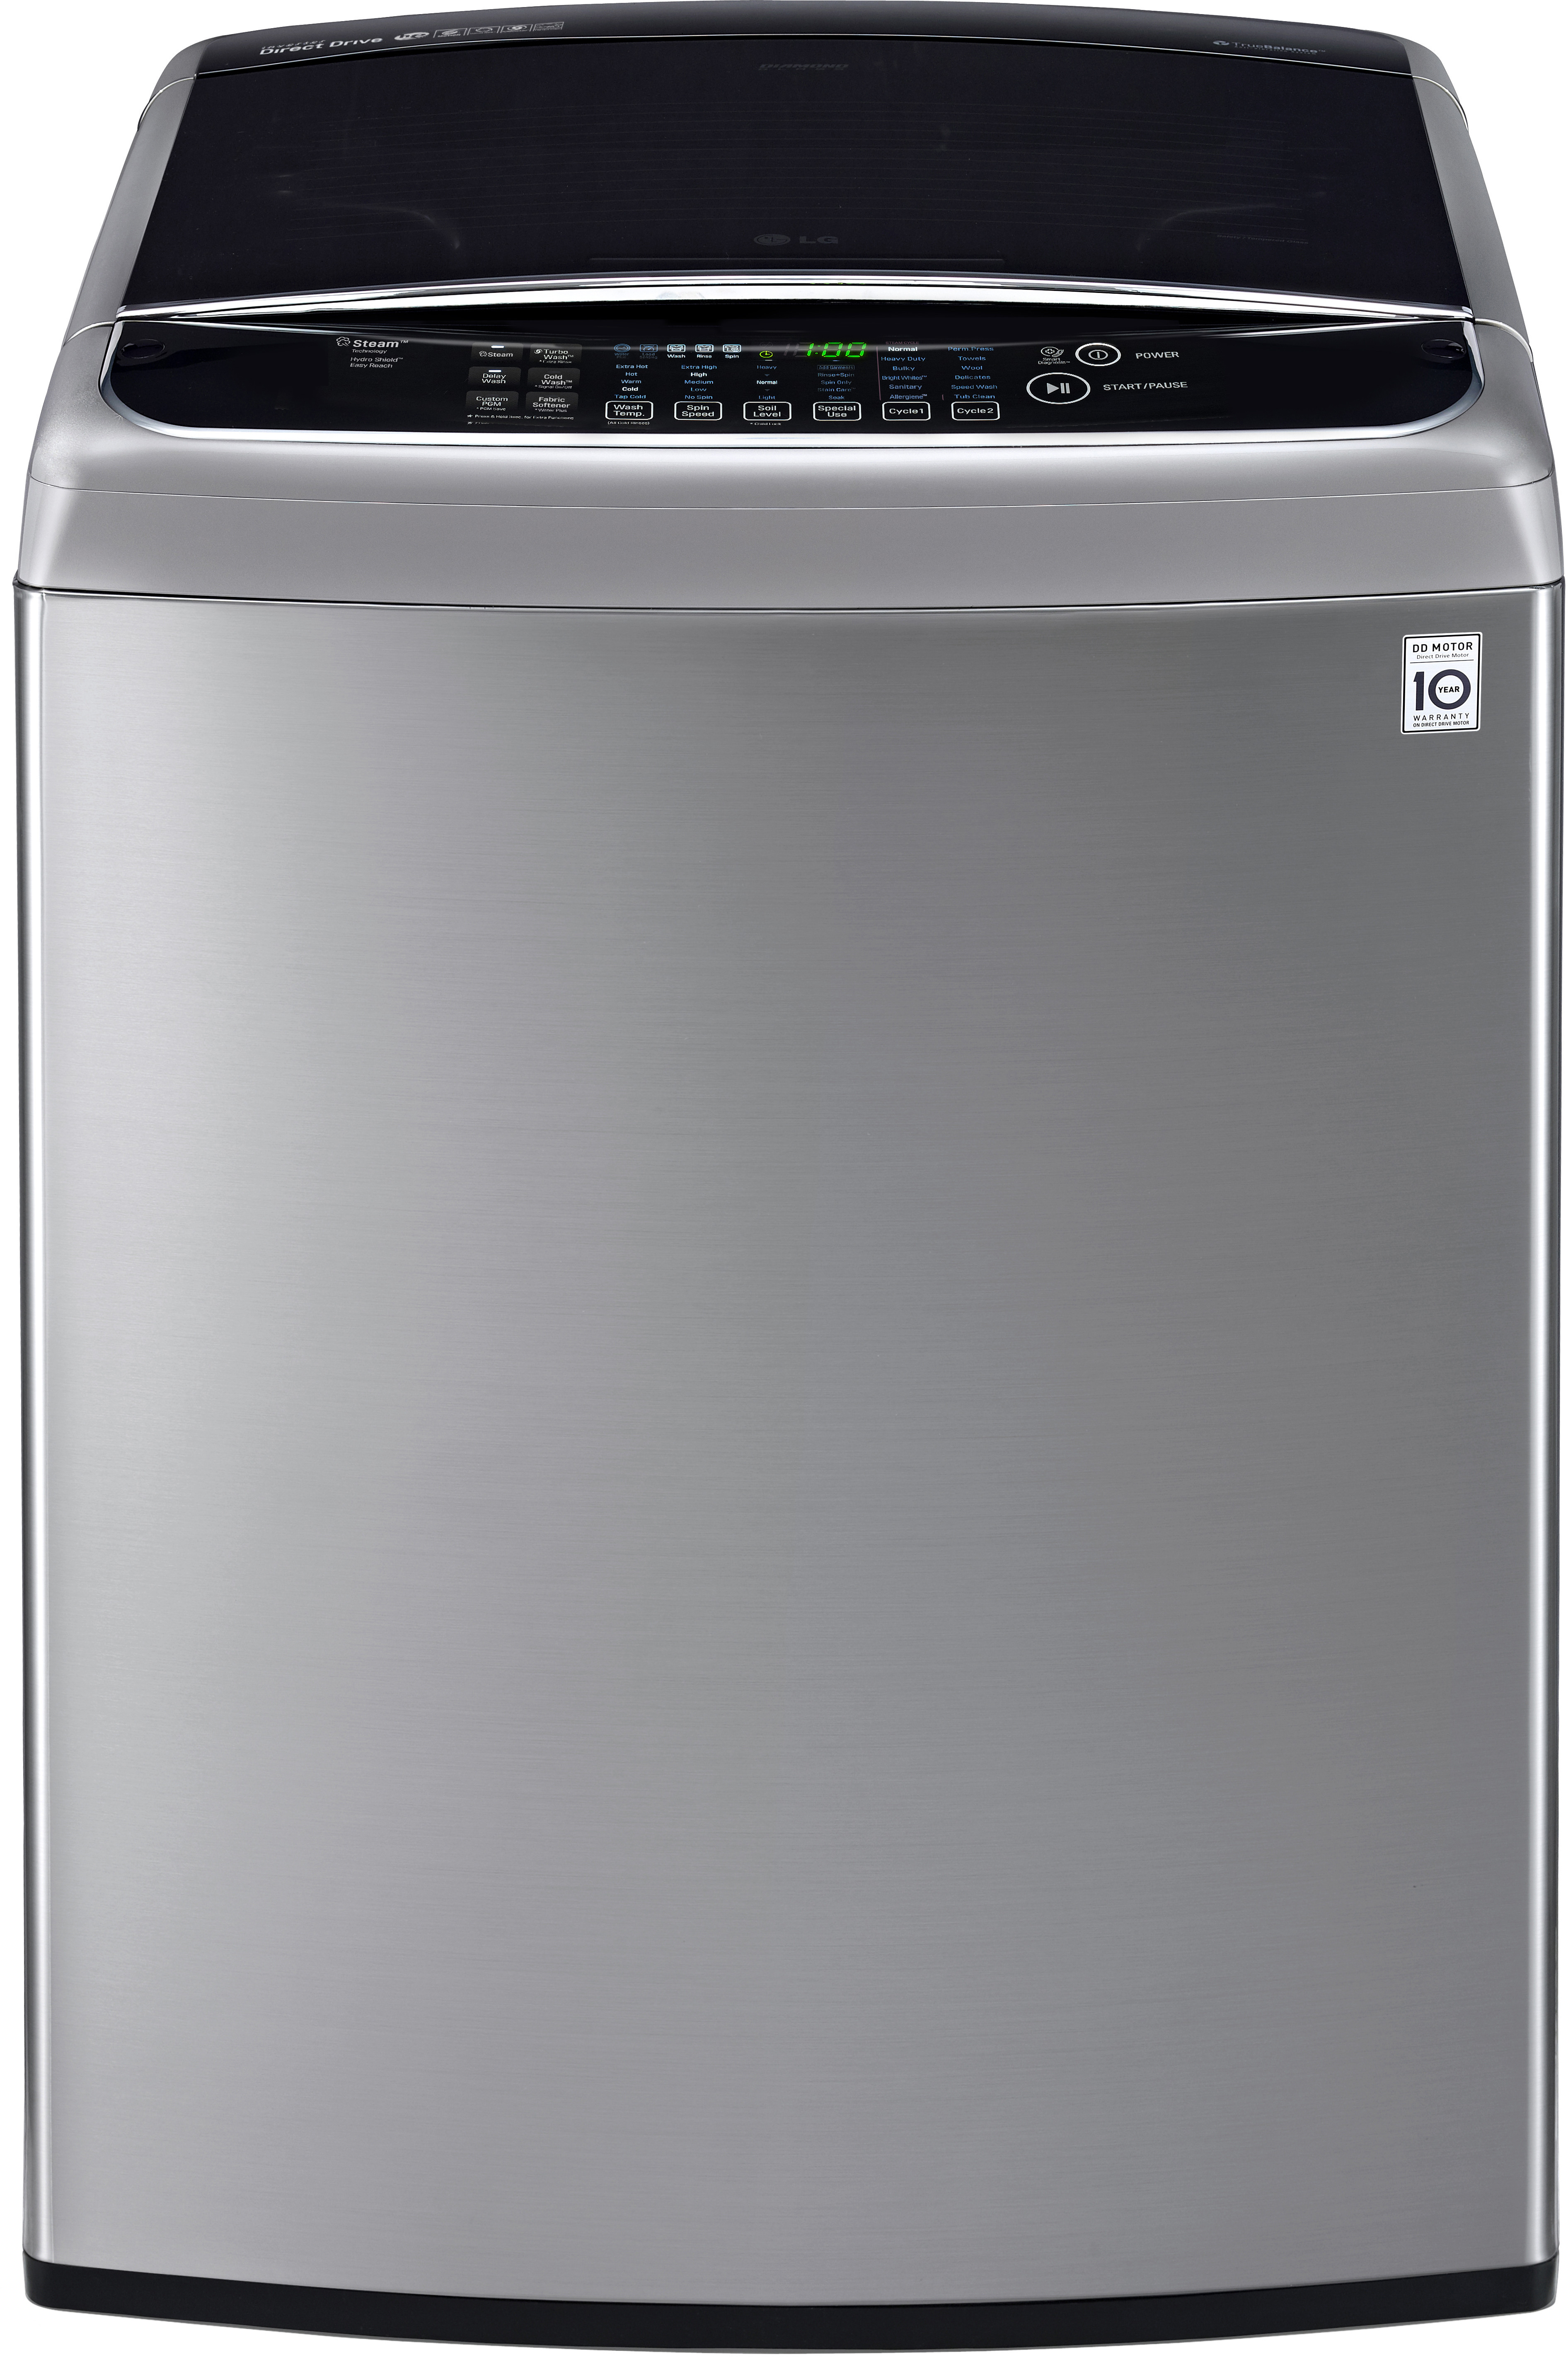 Lg Wt1801hva 27 Inch 5 0 Cu Ft Top Load Washer With 12